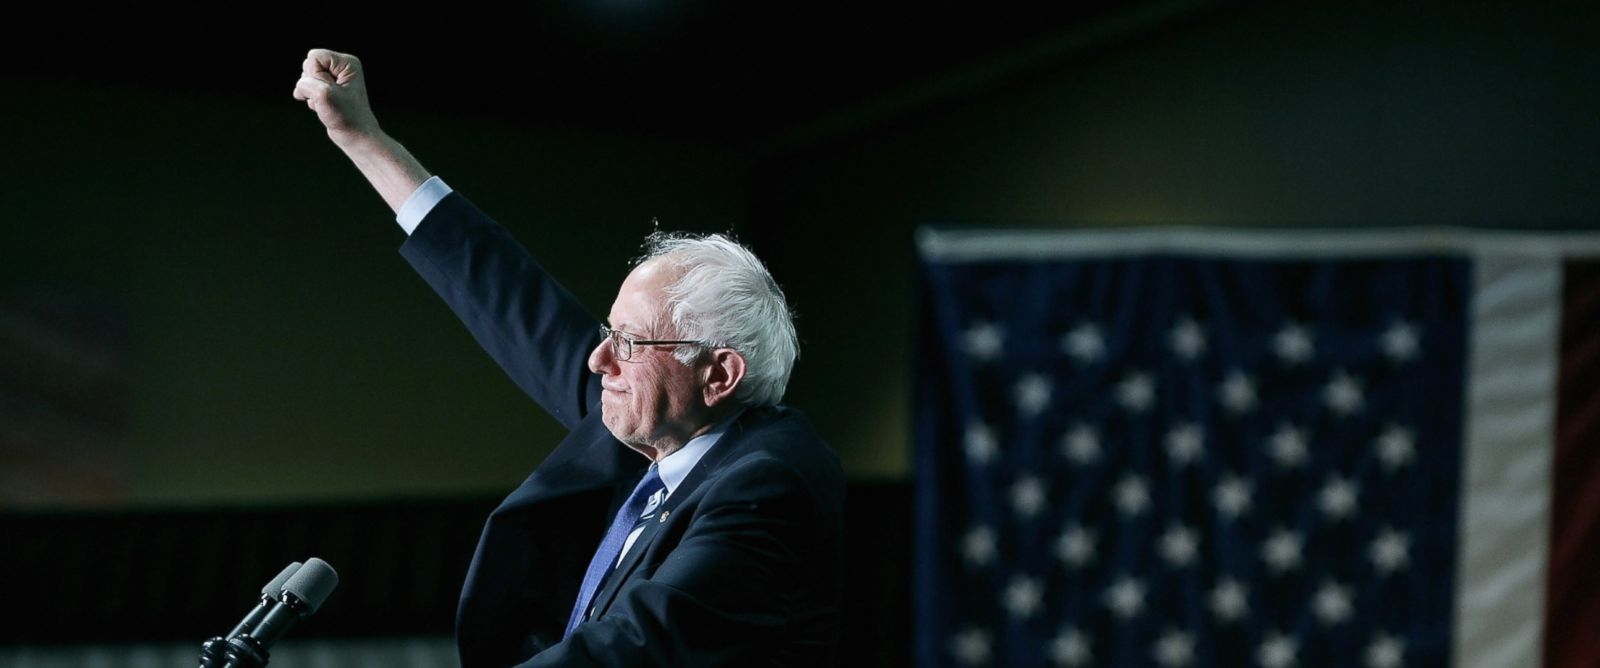 PHOTO: Democratic presidential candidate Sen. Bernie Sanders acknowledges the crowd gathered at the Phoenix Convention Center during a campaign rally on March 15, 2016 in Phoenix, Arizona.